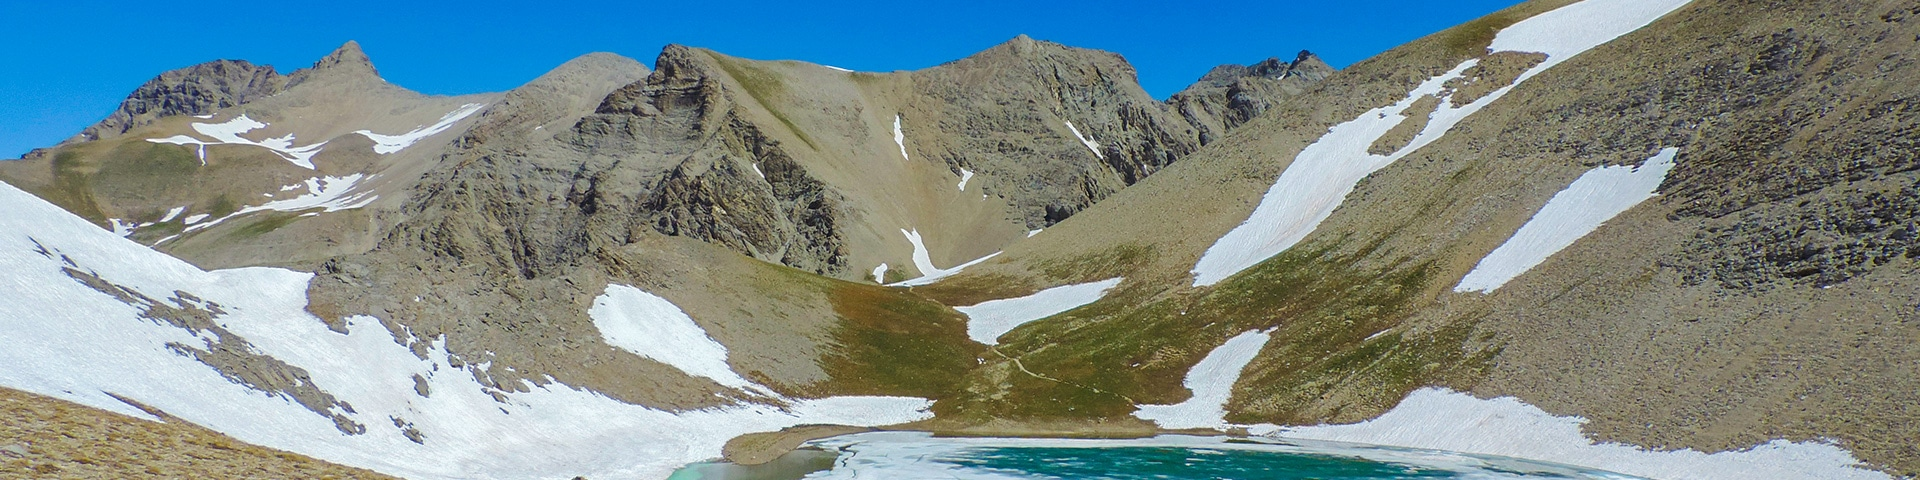 Panoramic views from the Sommets des Garrets hike in Mercantour National Park, France''